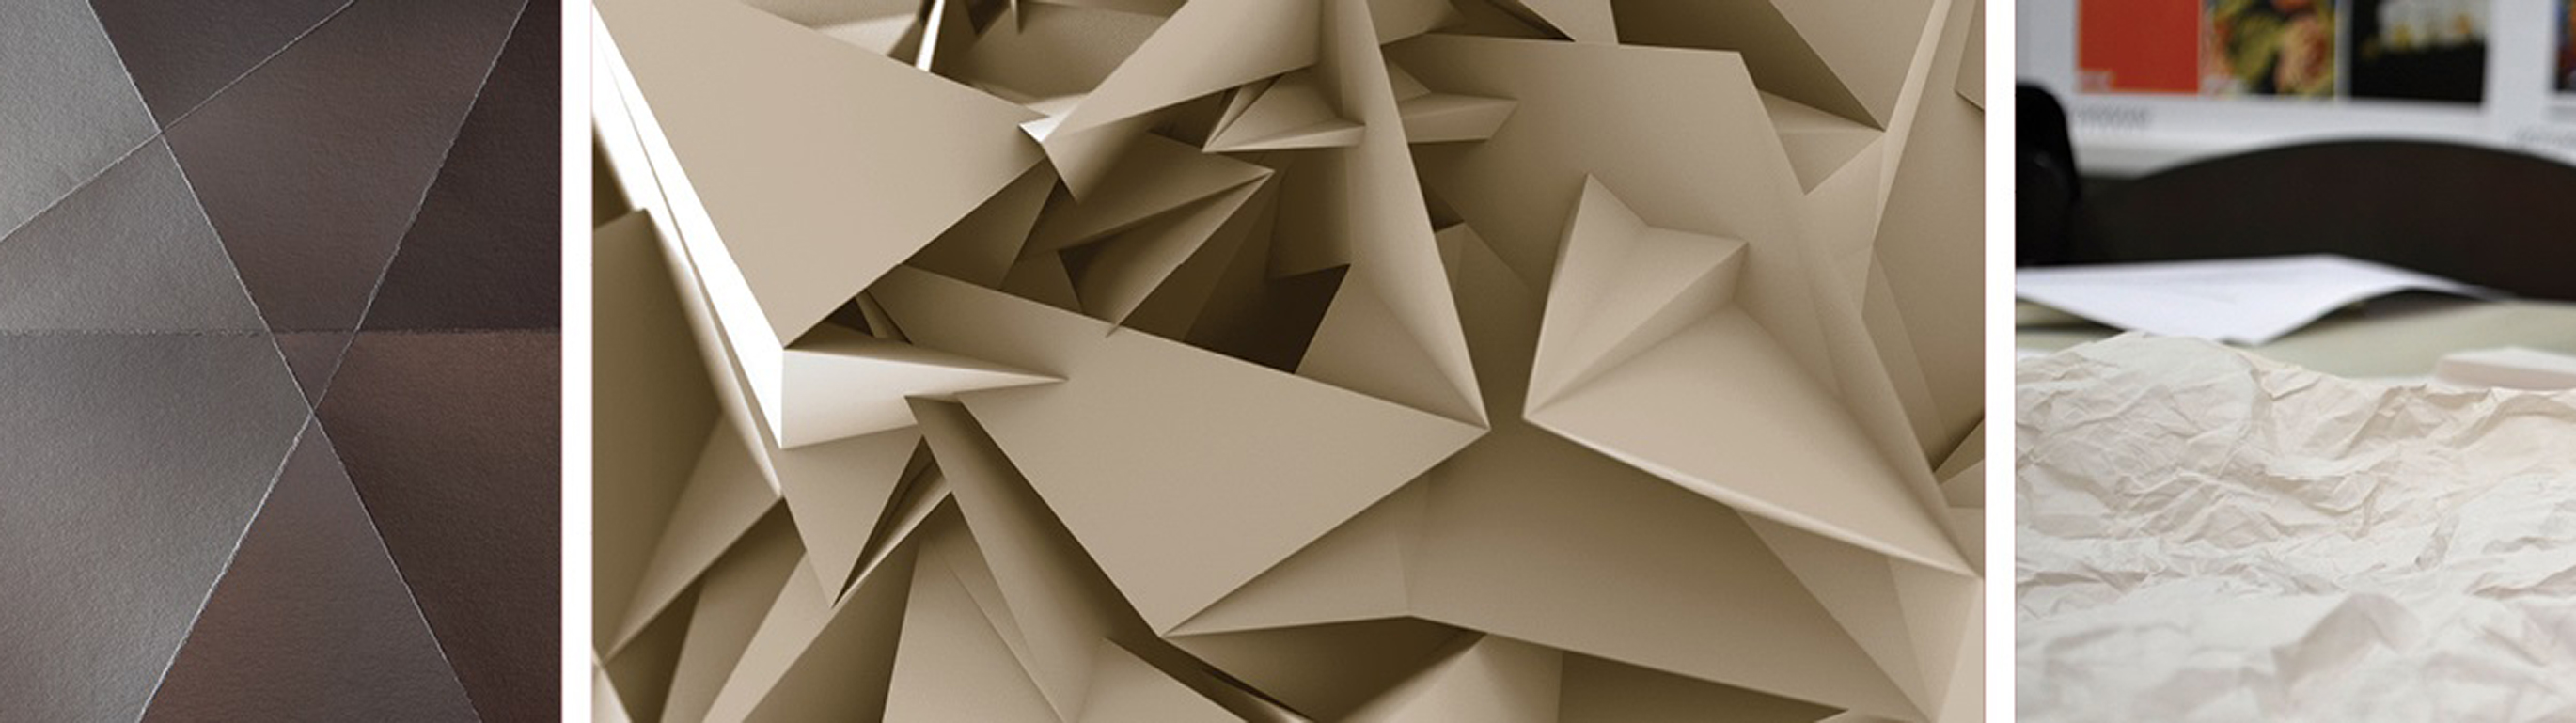 Origami Inspiration and Product Photos